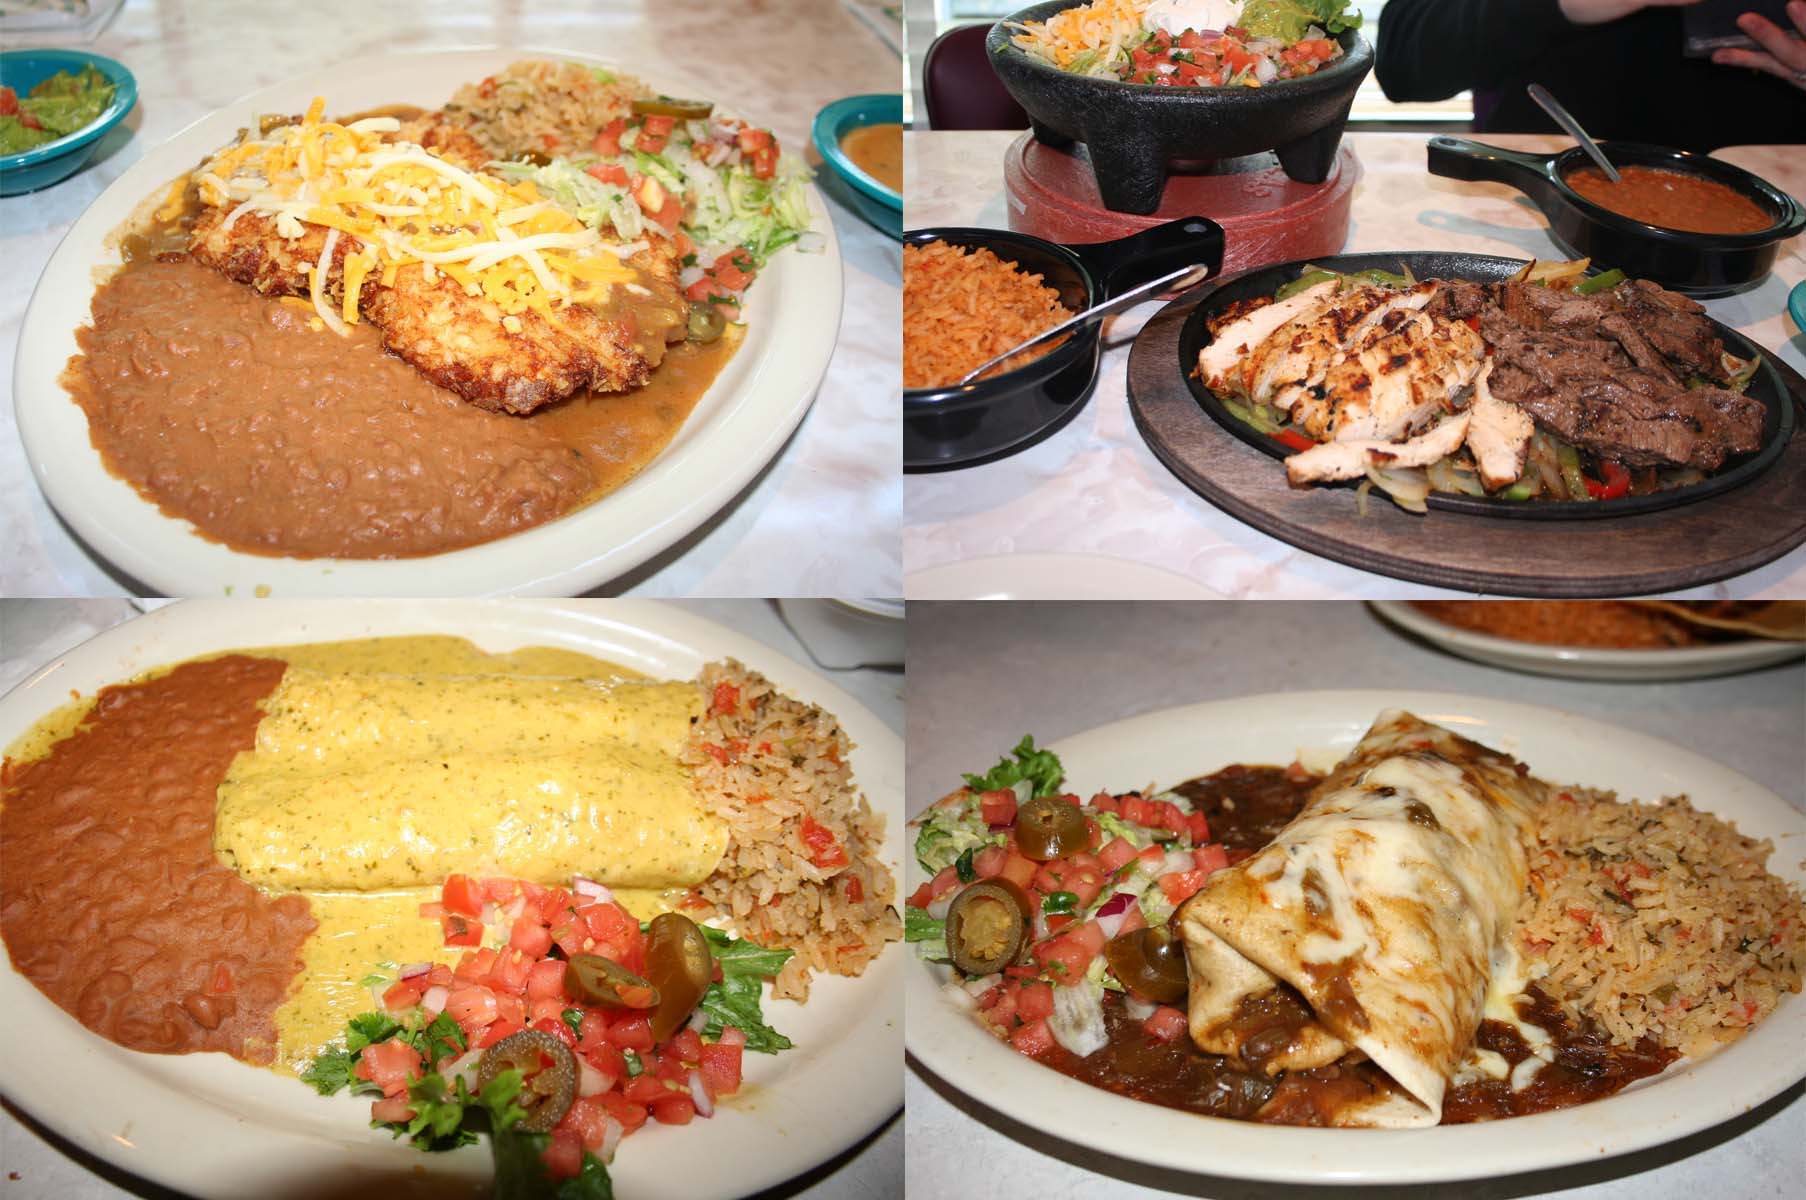 Entrees include (clockwise from top left) the Elvis green chile fried chicken, combination fajitas, the steak burrito with green chile sauce and Chicka-Chicka Boom-Boom enchiladas. (Photos: Mark Heckathorn/DC on Heels)